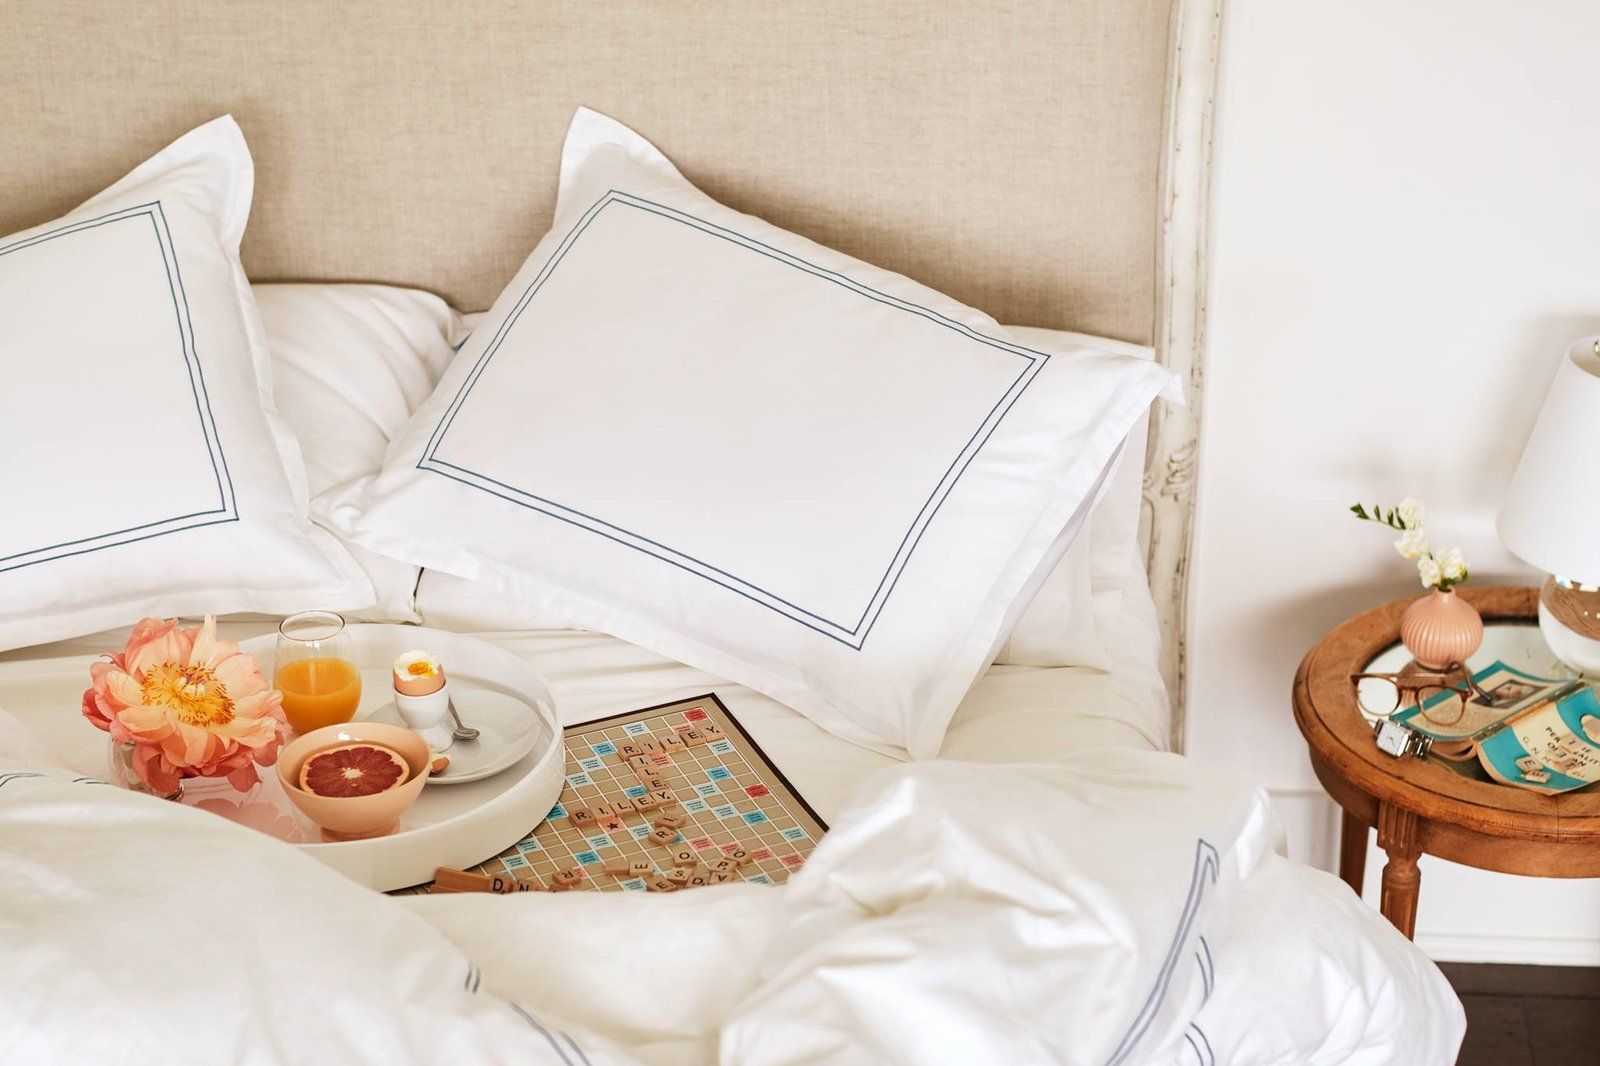 Photo 7 of 13 in The Best Places to Buy Hotel-Quality Bedding That Won't Break the Bank